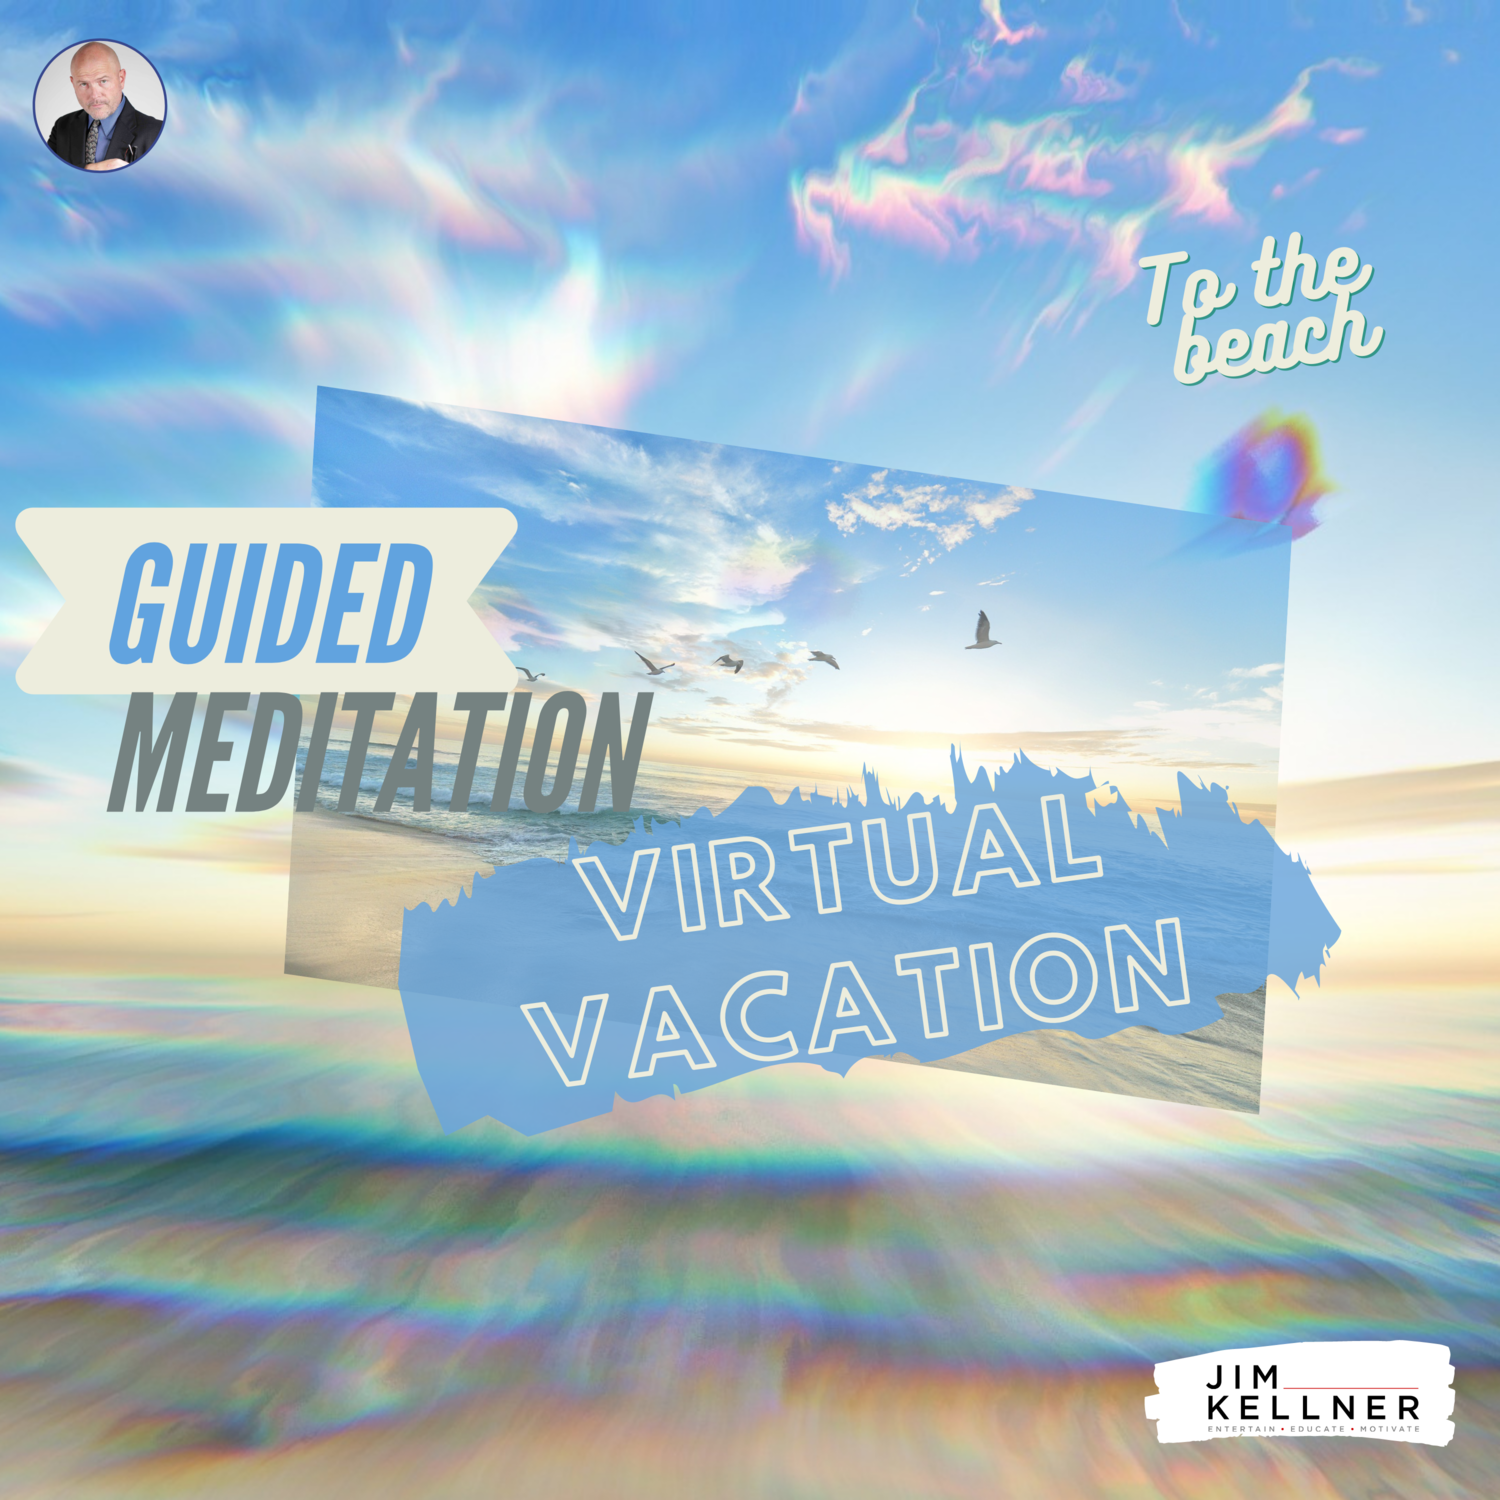 Virtual Vacation, A Trip To The Beach - Guided Meditation